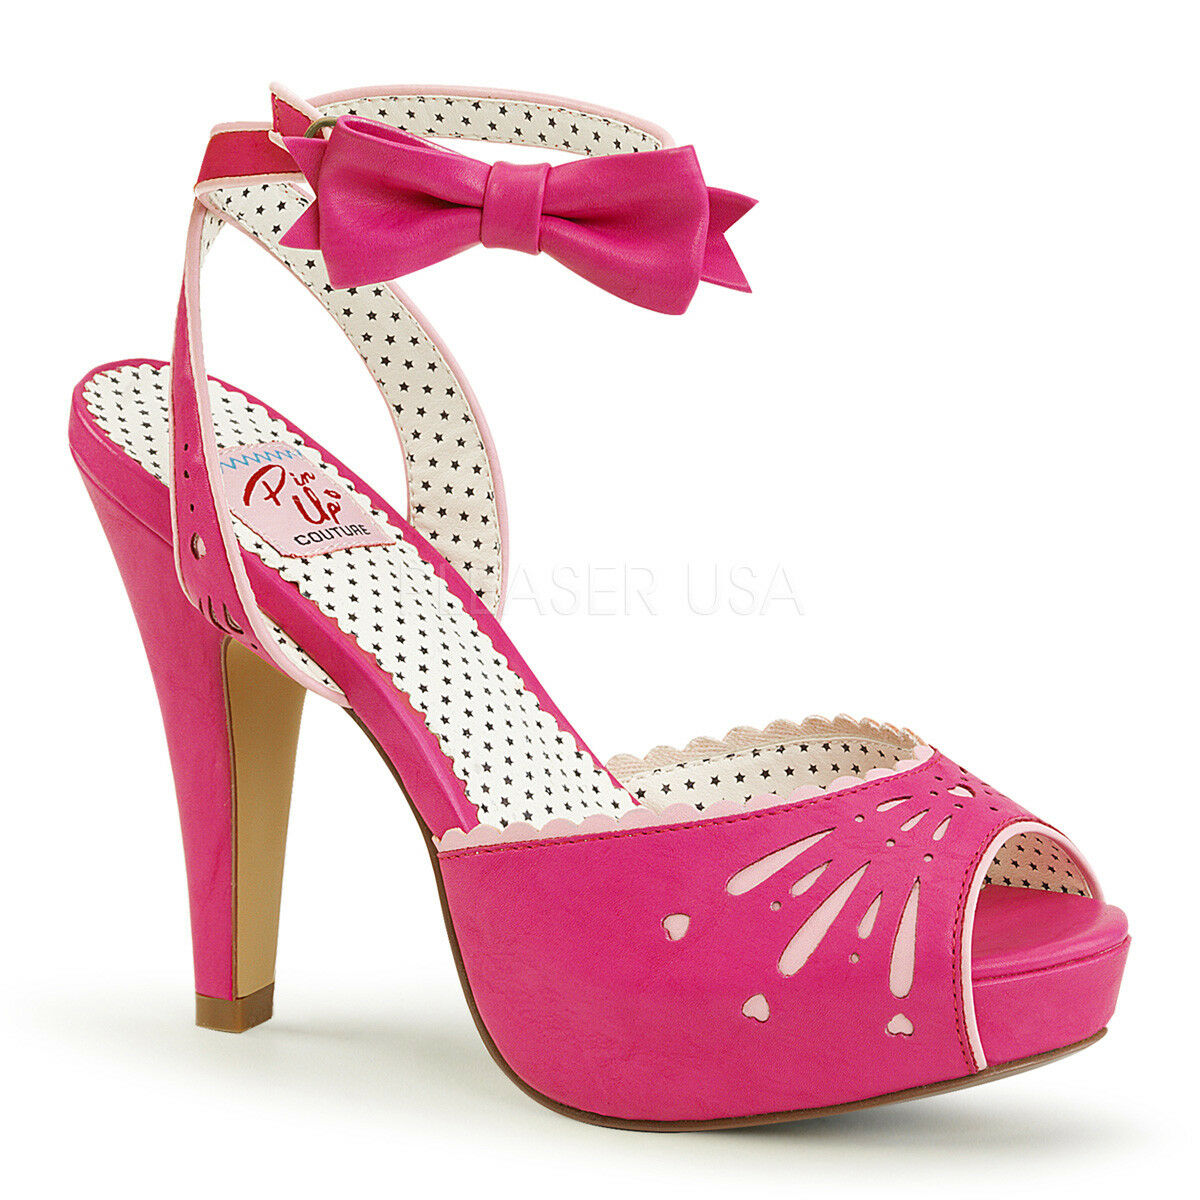 Pin Up Couture BETTIE-01 Damenschuhe Hot Pink Faux Leder Ankle Strap High Heels